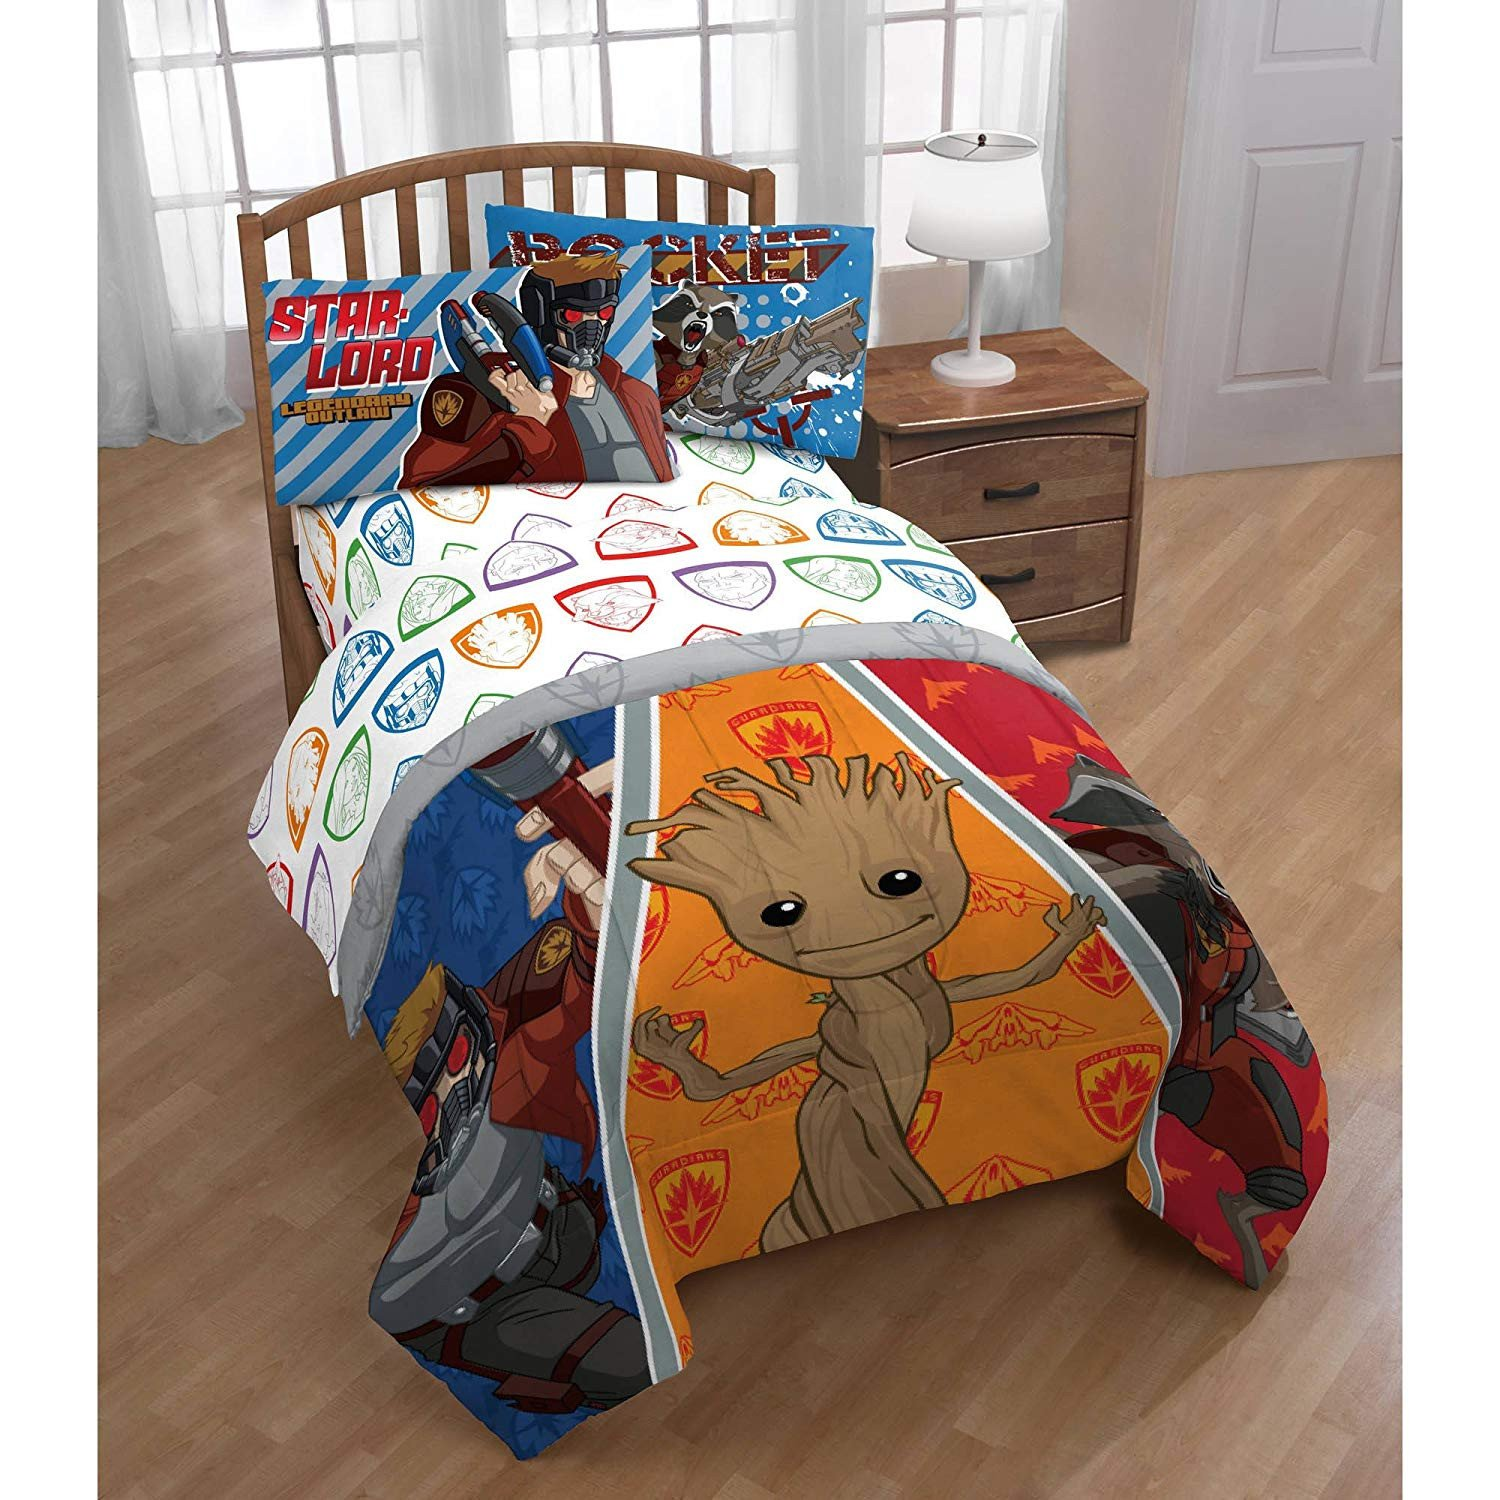 Ninja Turtle Bedroom Set Awesome Buy D I D 5 Piece Kids Green Blue Teenage Mutant Ninja